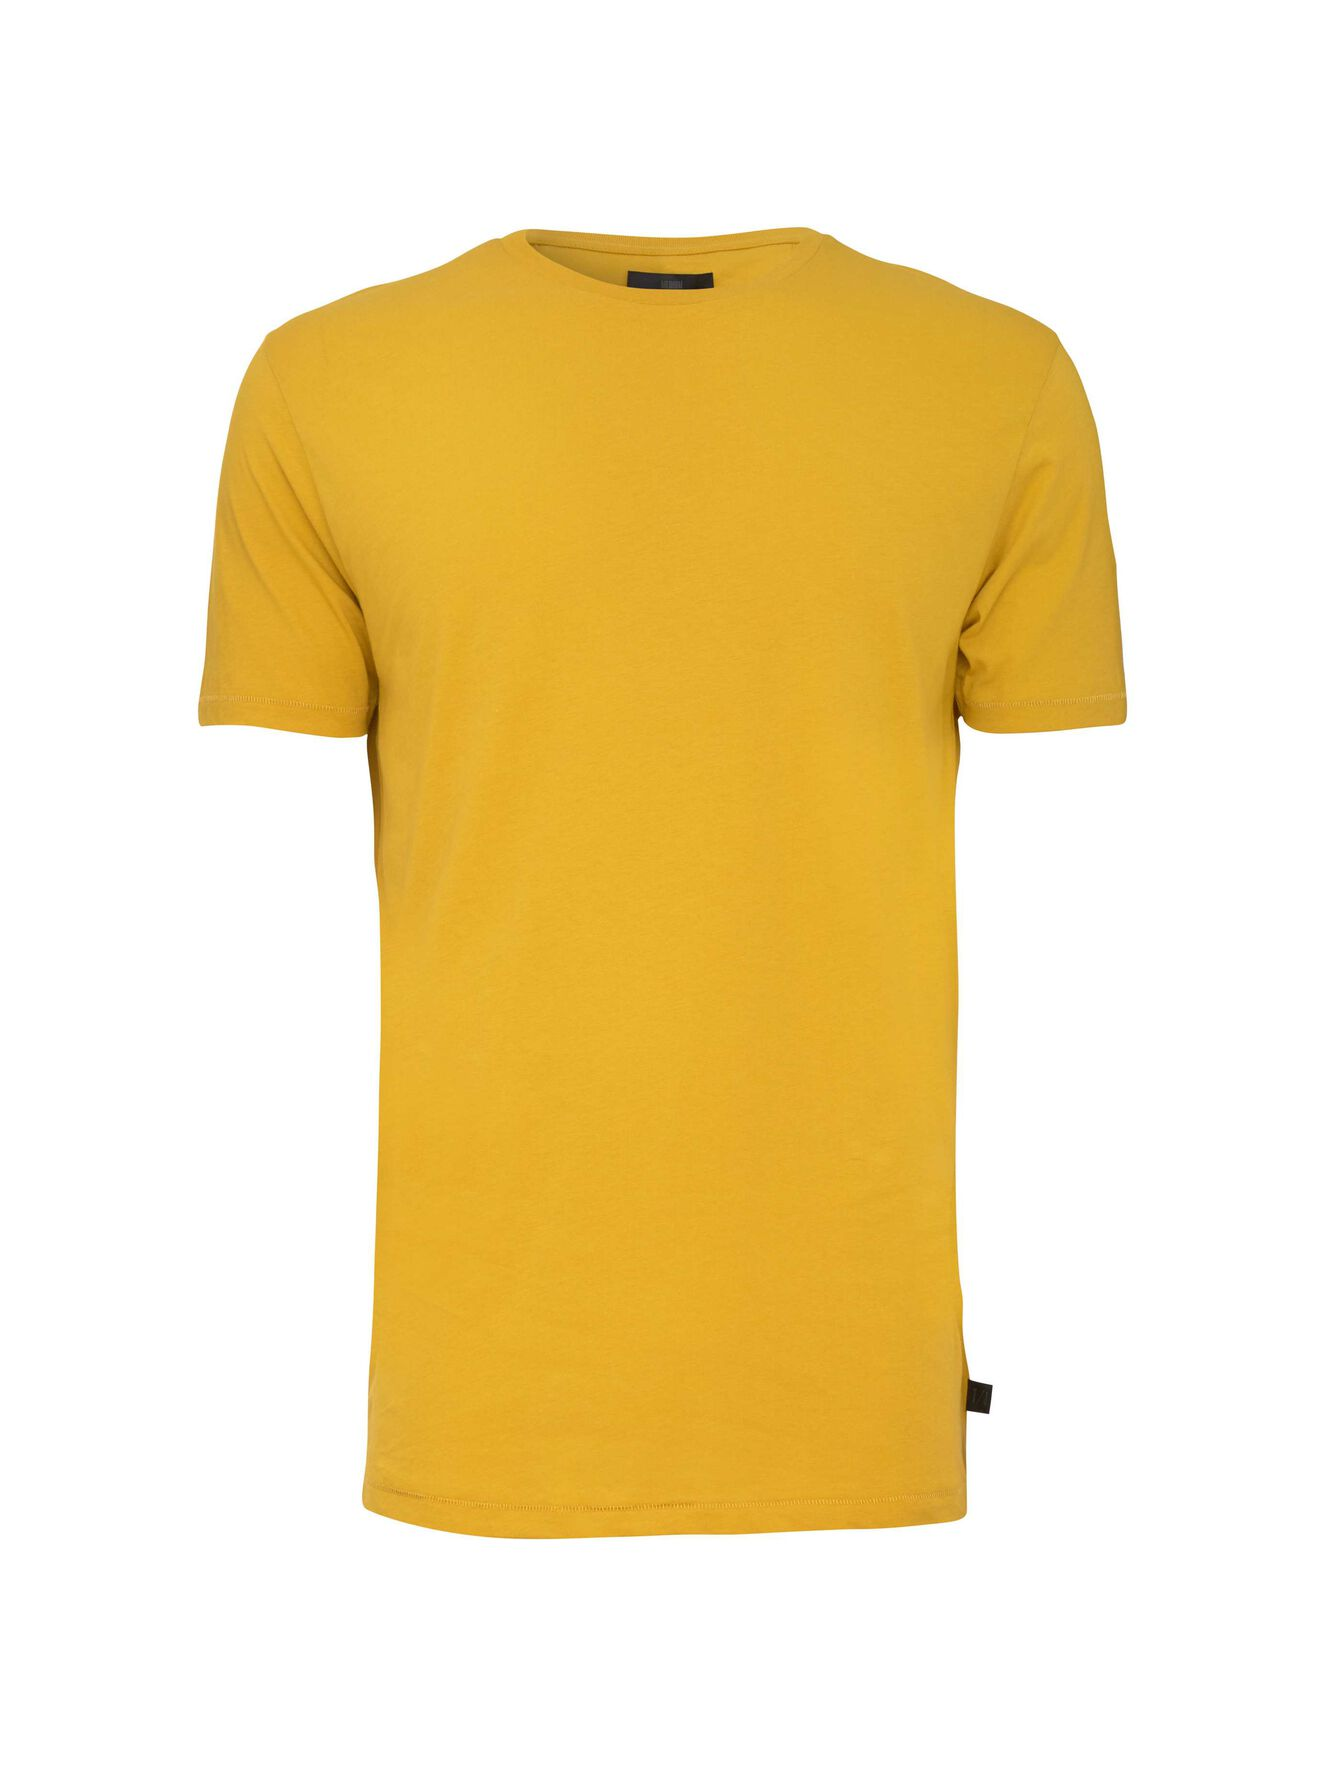 COREY EINFARBIGES T-SHIRT in Mustard from Tiger of Sweden